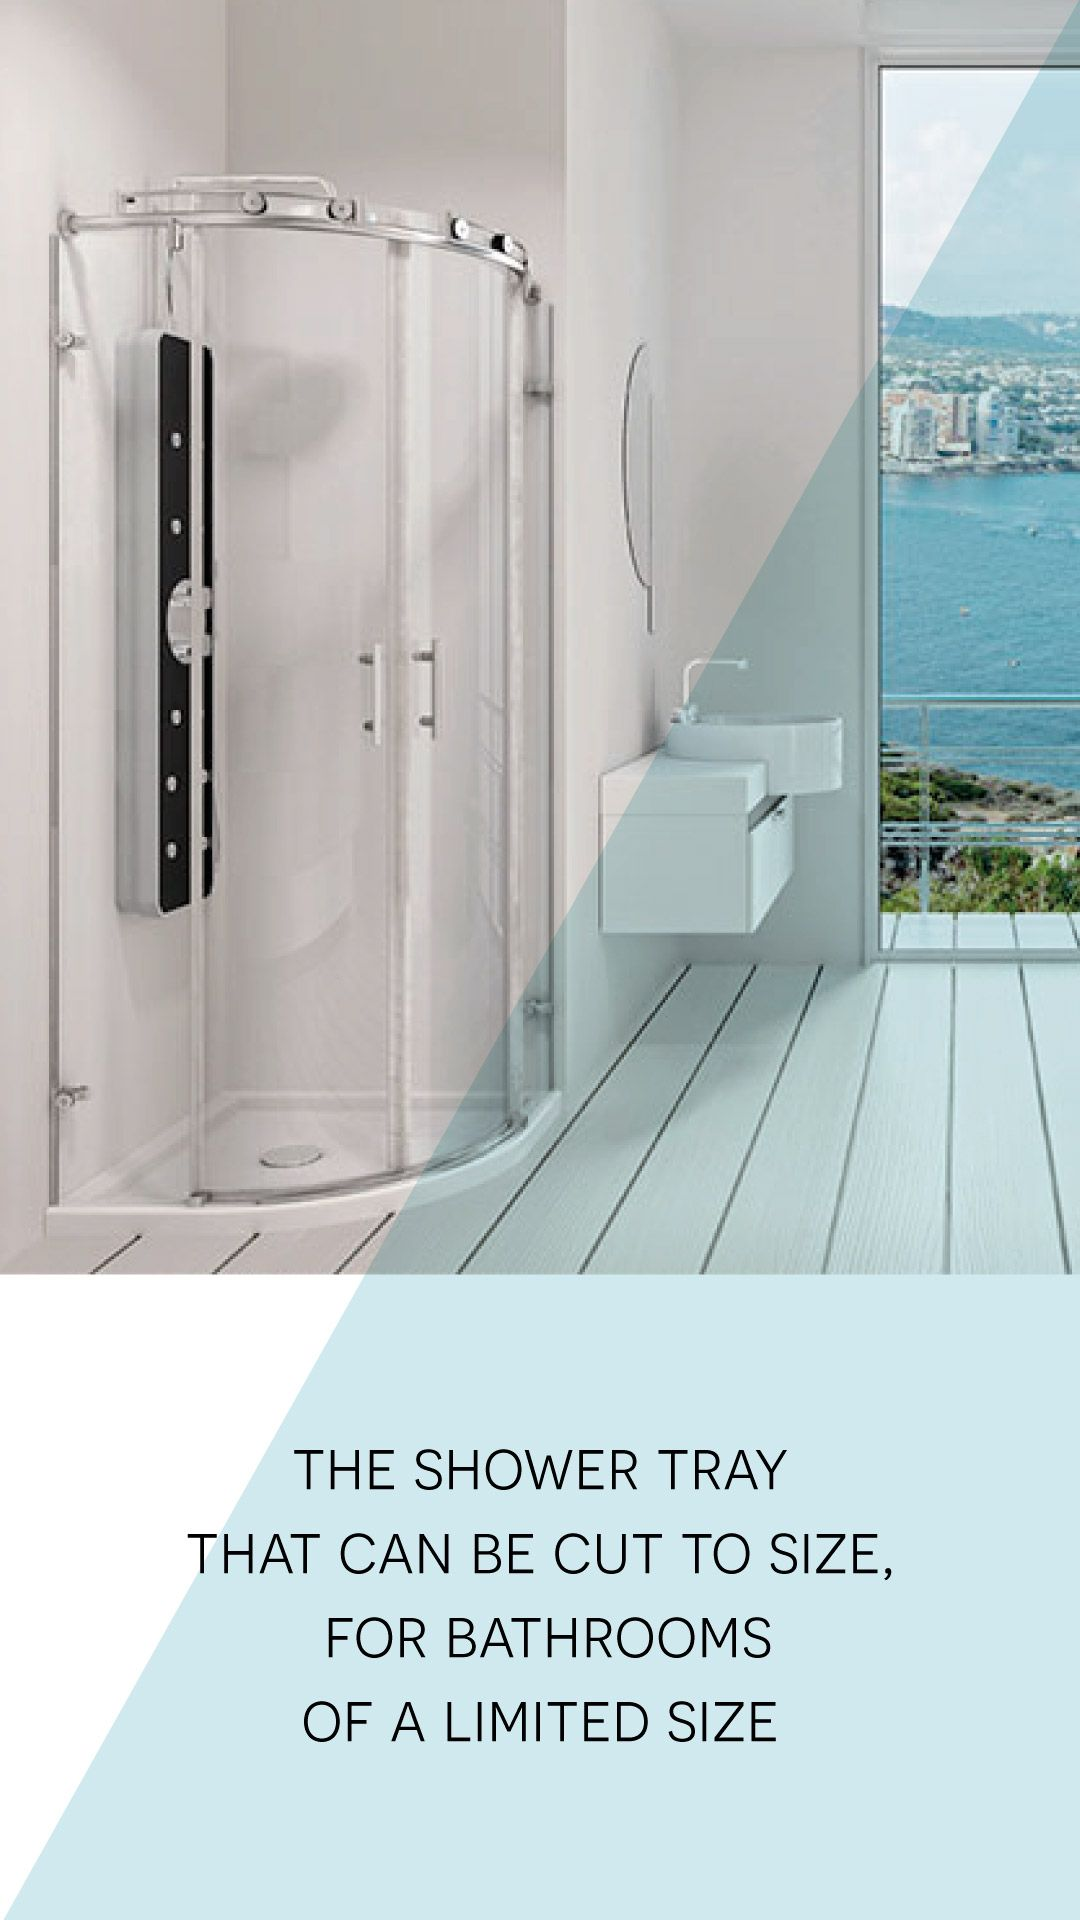 GOTHAM, the shower tray that can be cut to size, for bathrooms of a ...